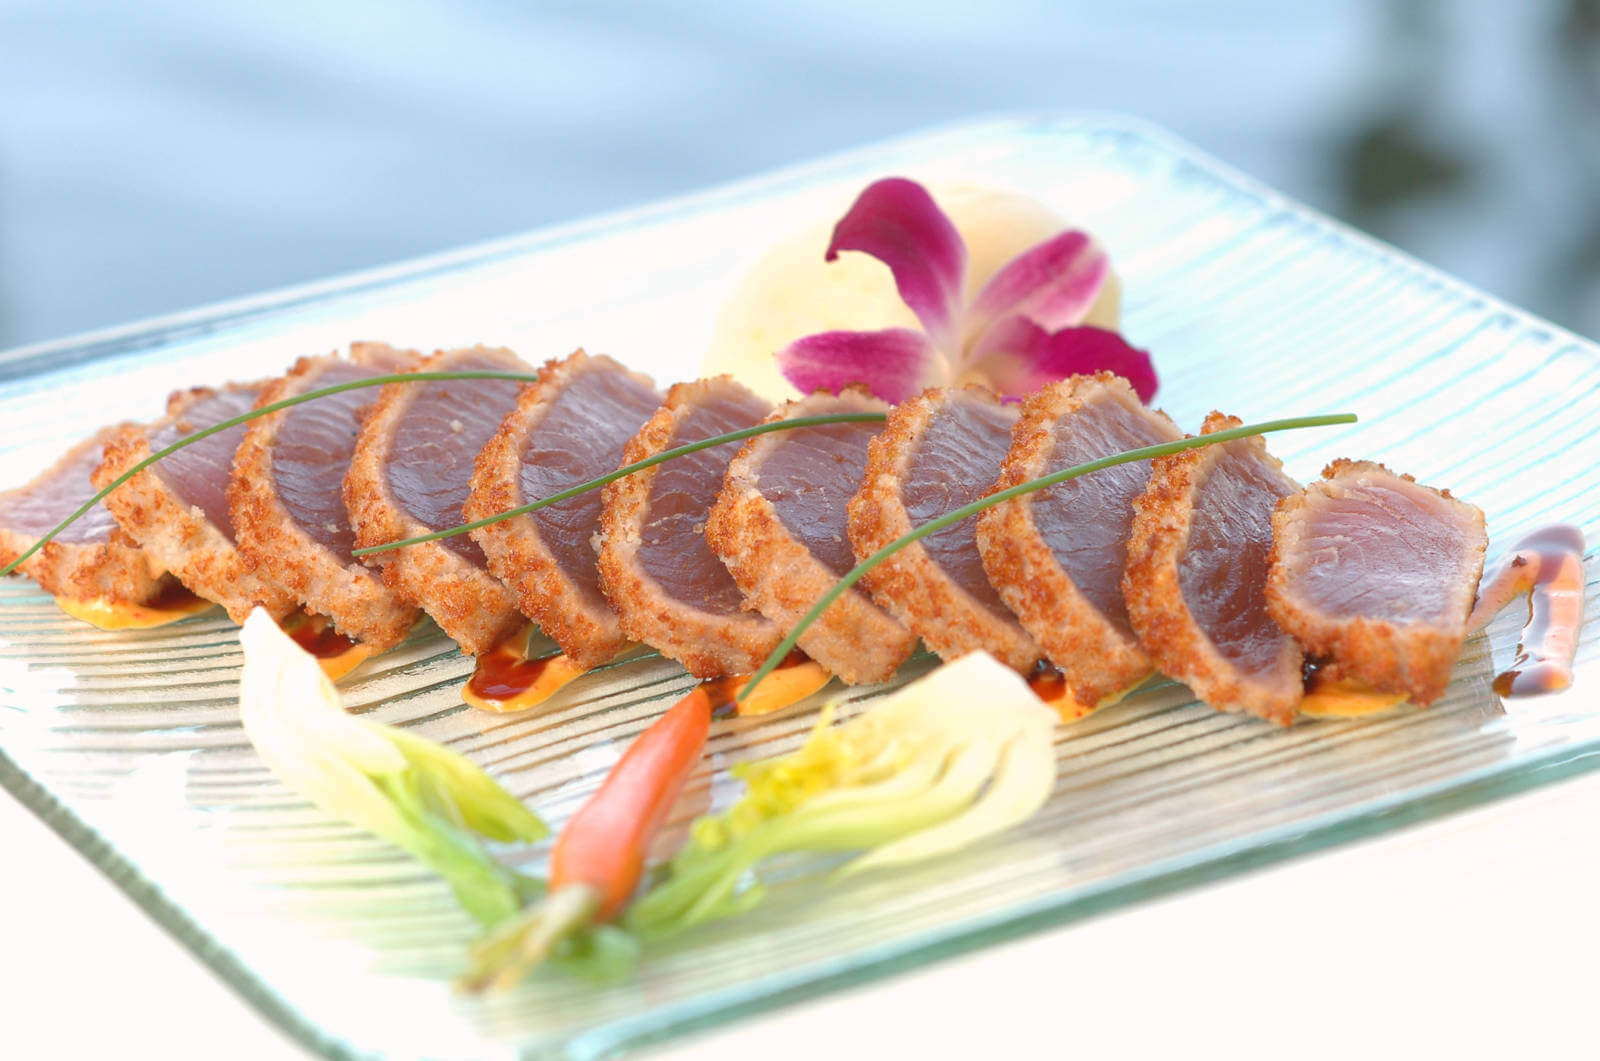 Tataki of Yellowfin Tuna with an Asian twist. Enjoy the award-winning dinner menu, fine wines, Sunday Brunch, celebrate a wedding or anniversary overlooking Little Sarasota Bay at Ophelia's on the Bay in Siesta Key, Florida. | Must Do Visitor Guides